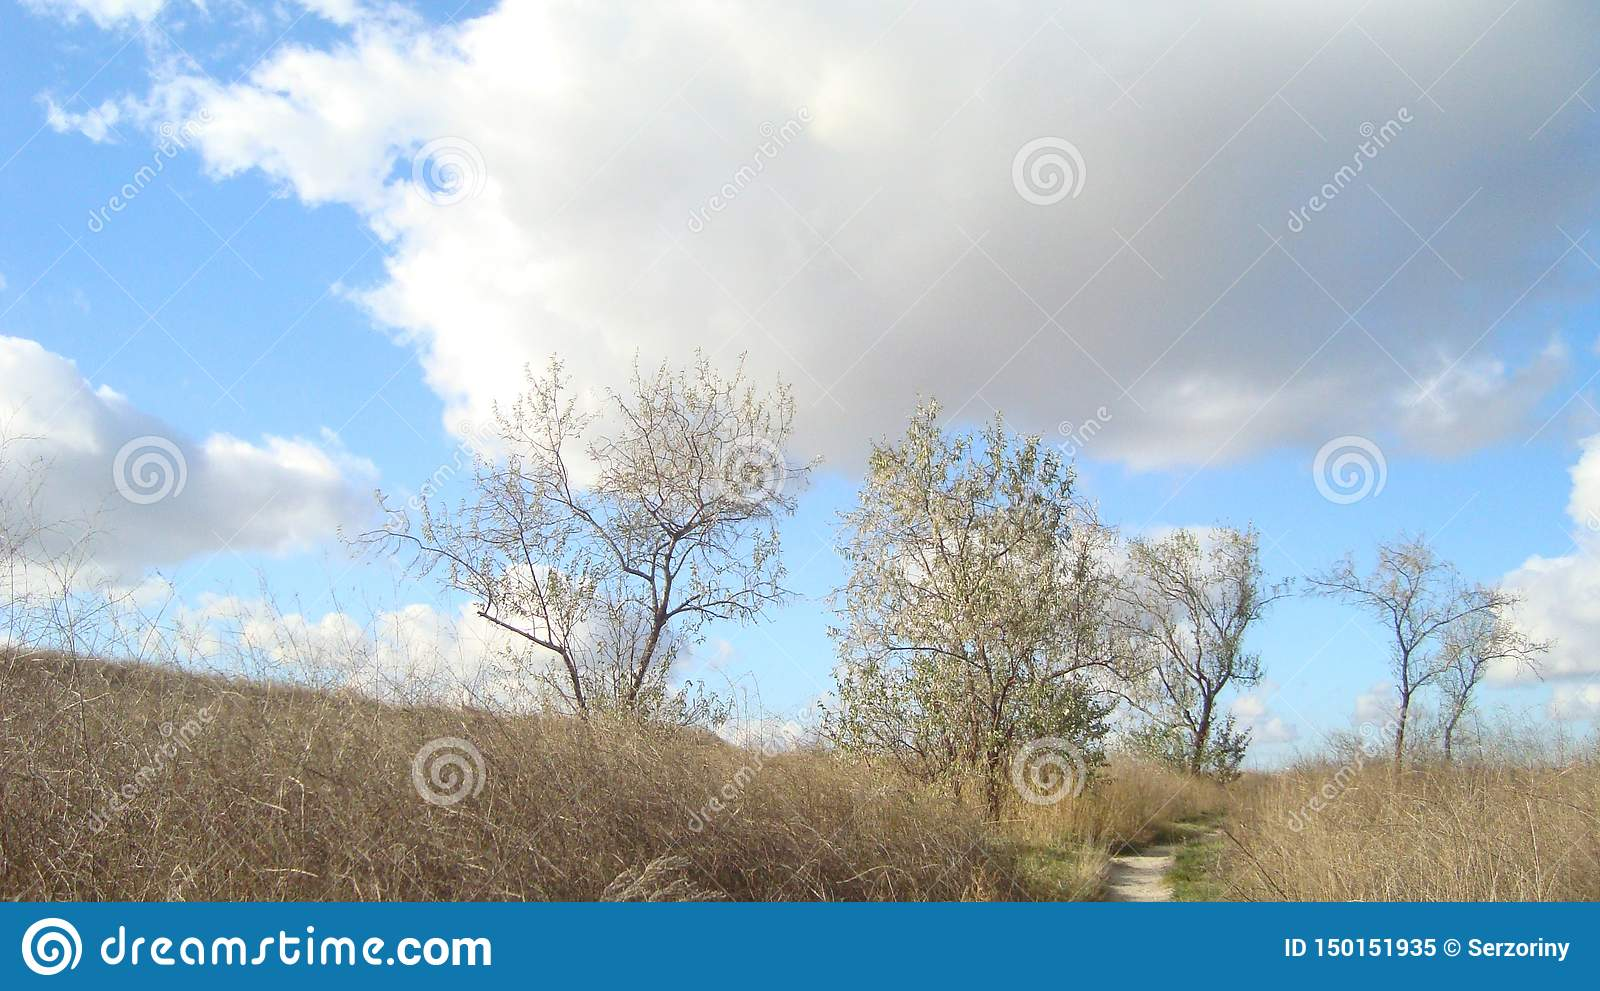 Undersized trees on an overgrown field under clouds of blue sky on a clear day